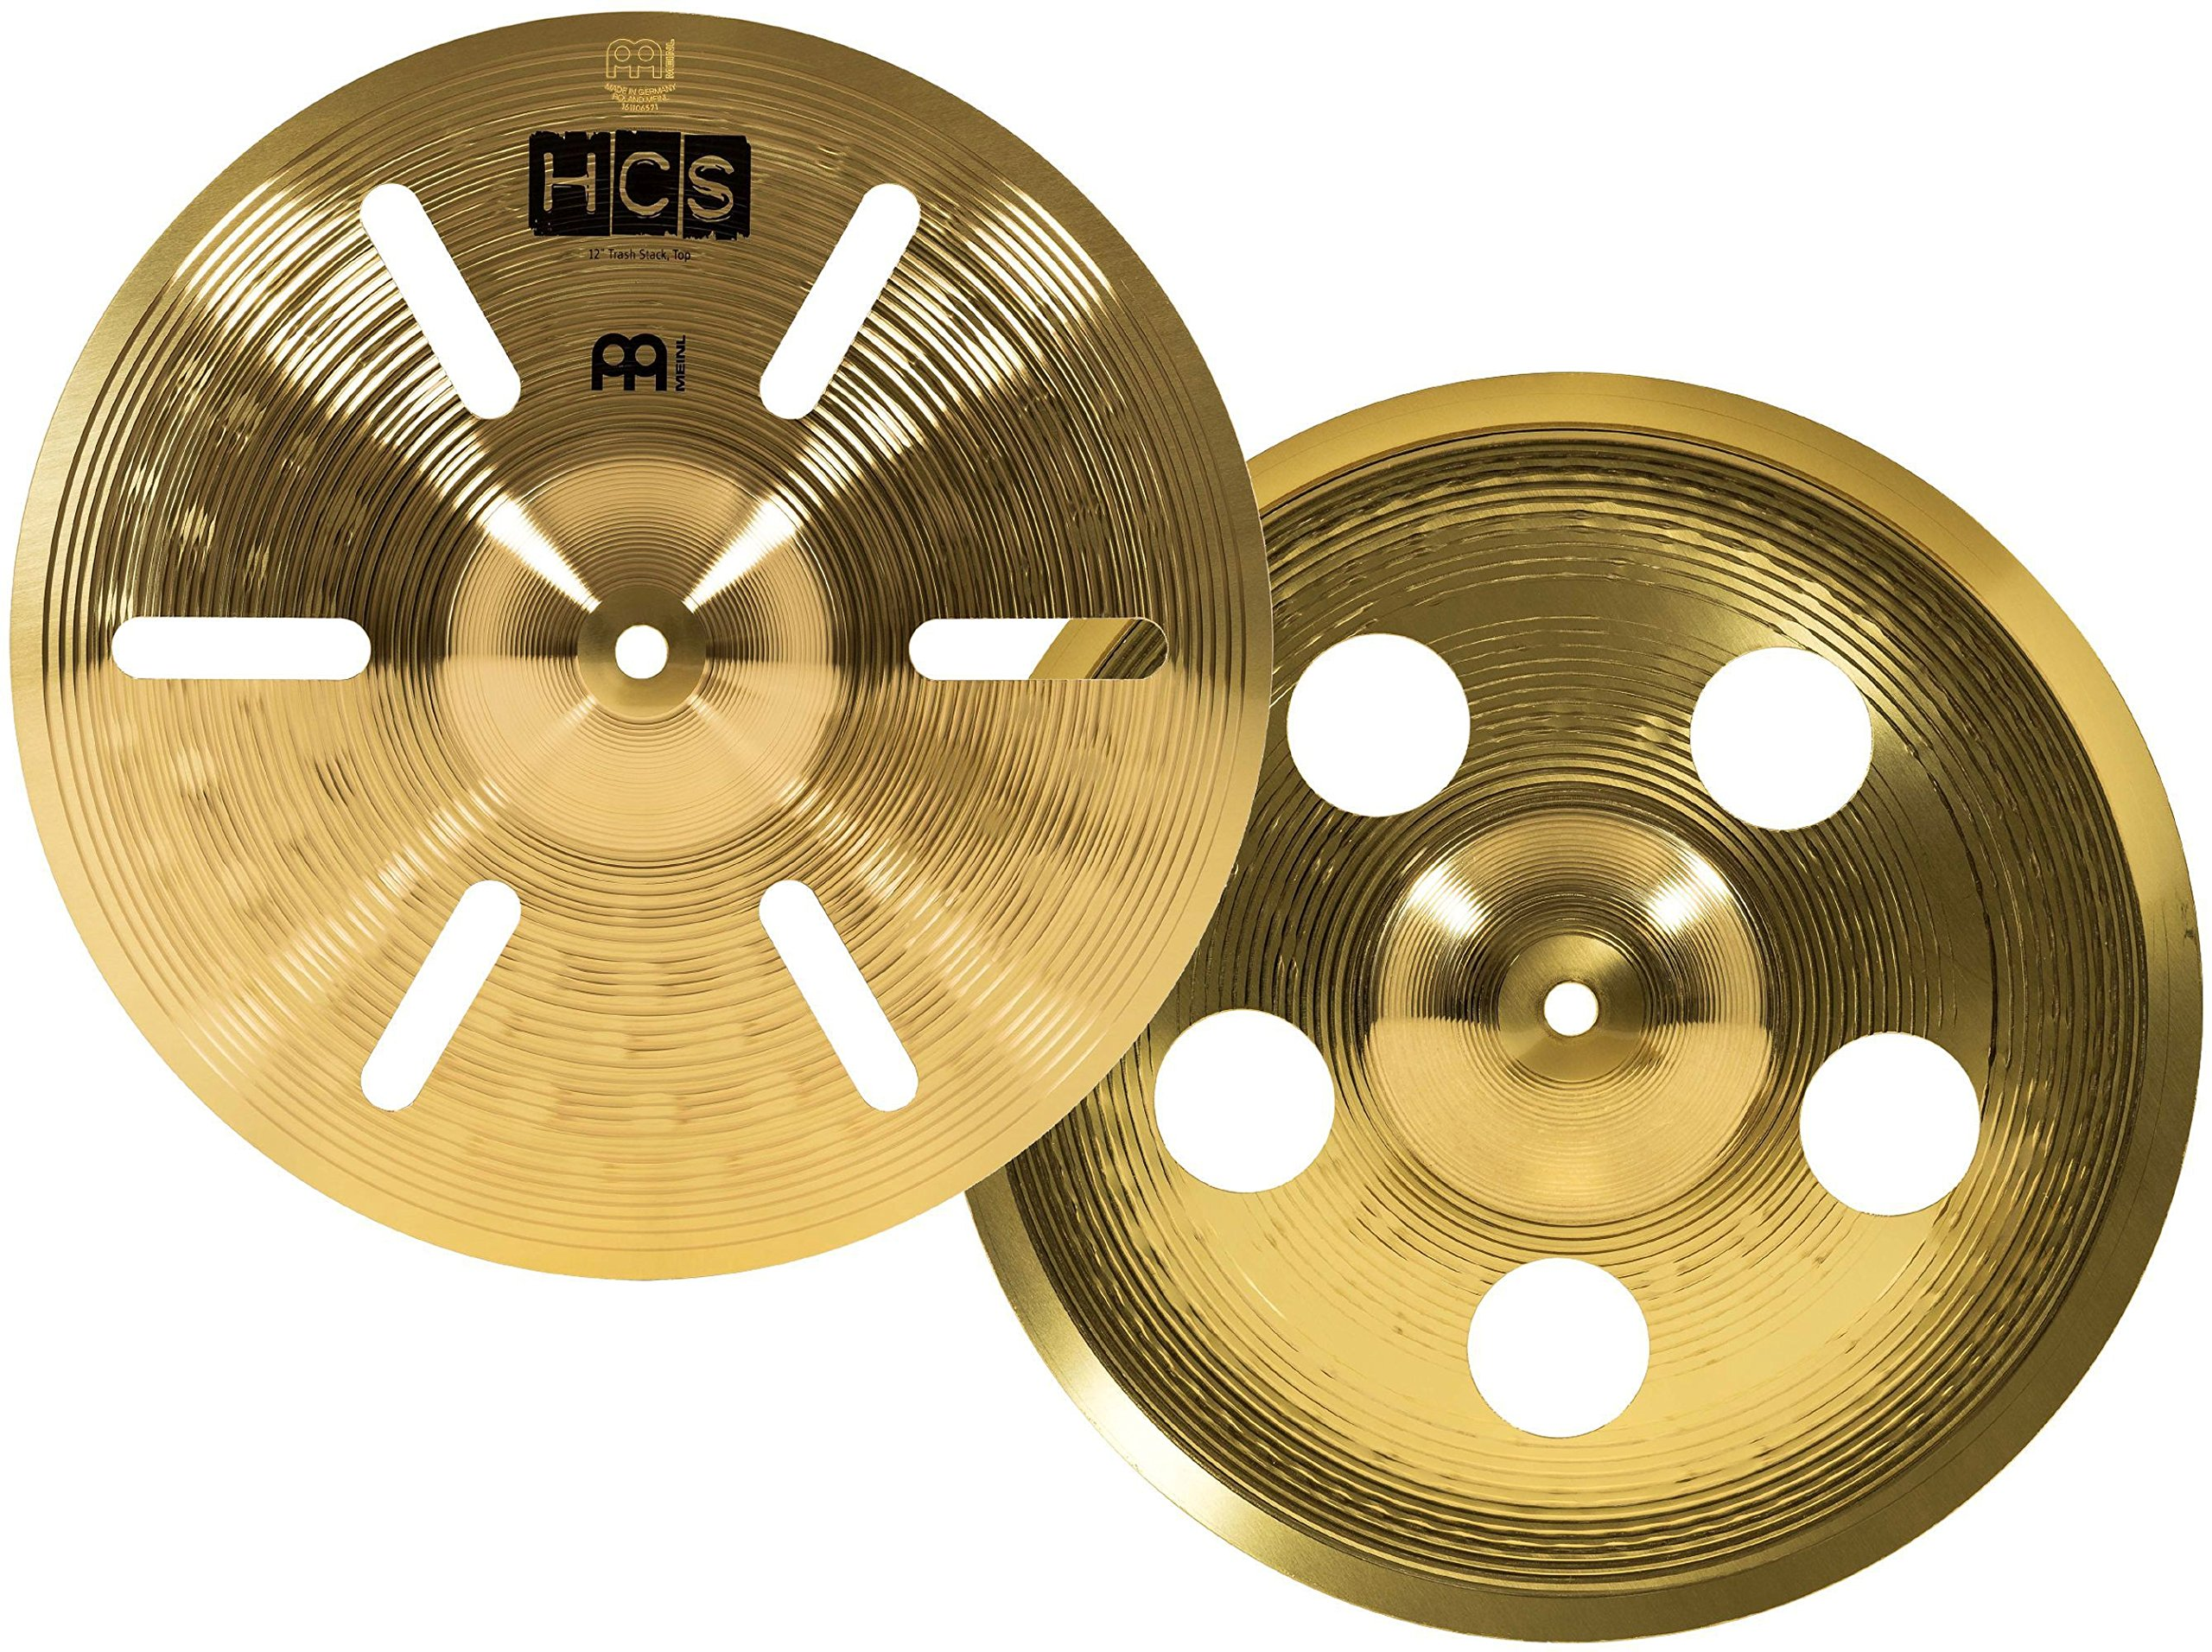 Meinl Cymbals HCS12TRS 12'' HCS Brass Trash Stack Cymbal Pair for Drum Set (VIDEO)